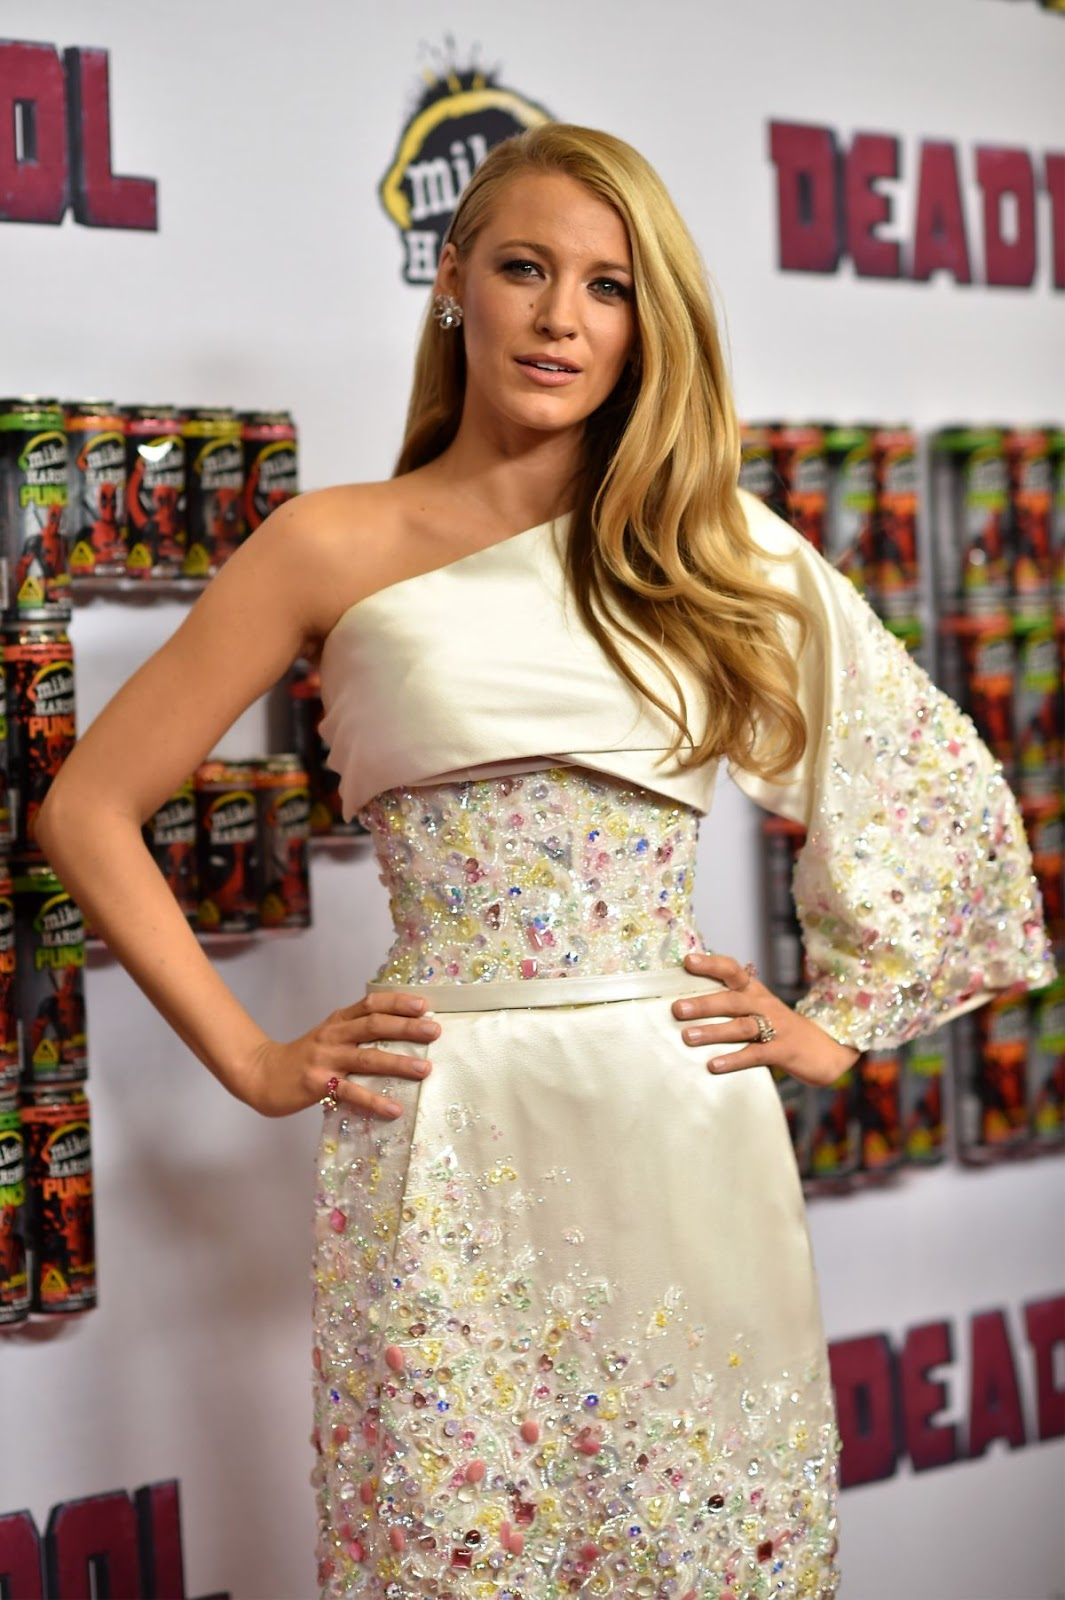 Full HD Photos of Blake Lively at 'Deadpool' New York Premiere